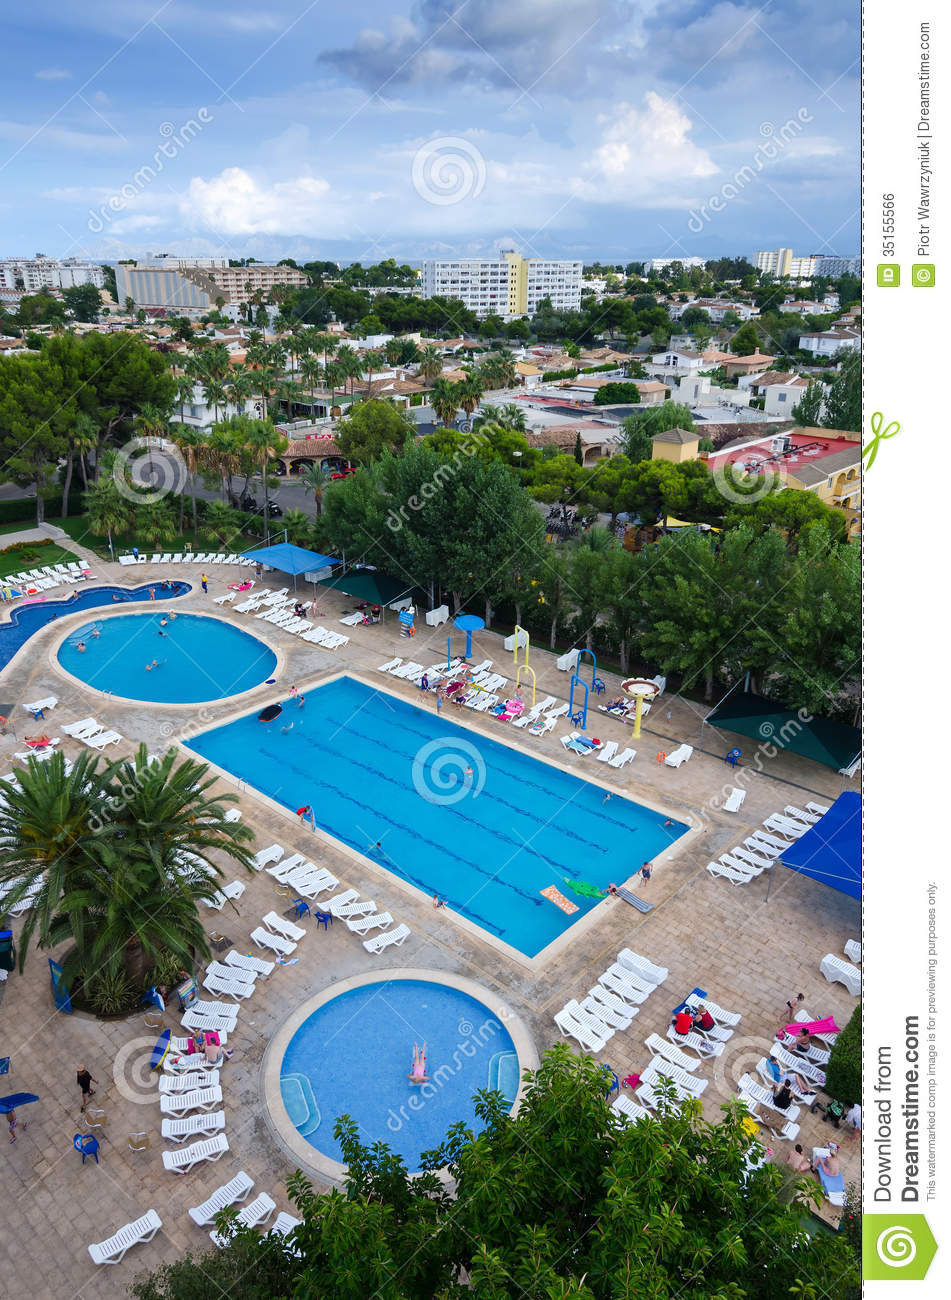 Alcudia Tourist Resort - Aerial View Editorial Photo - Image: 35155566